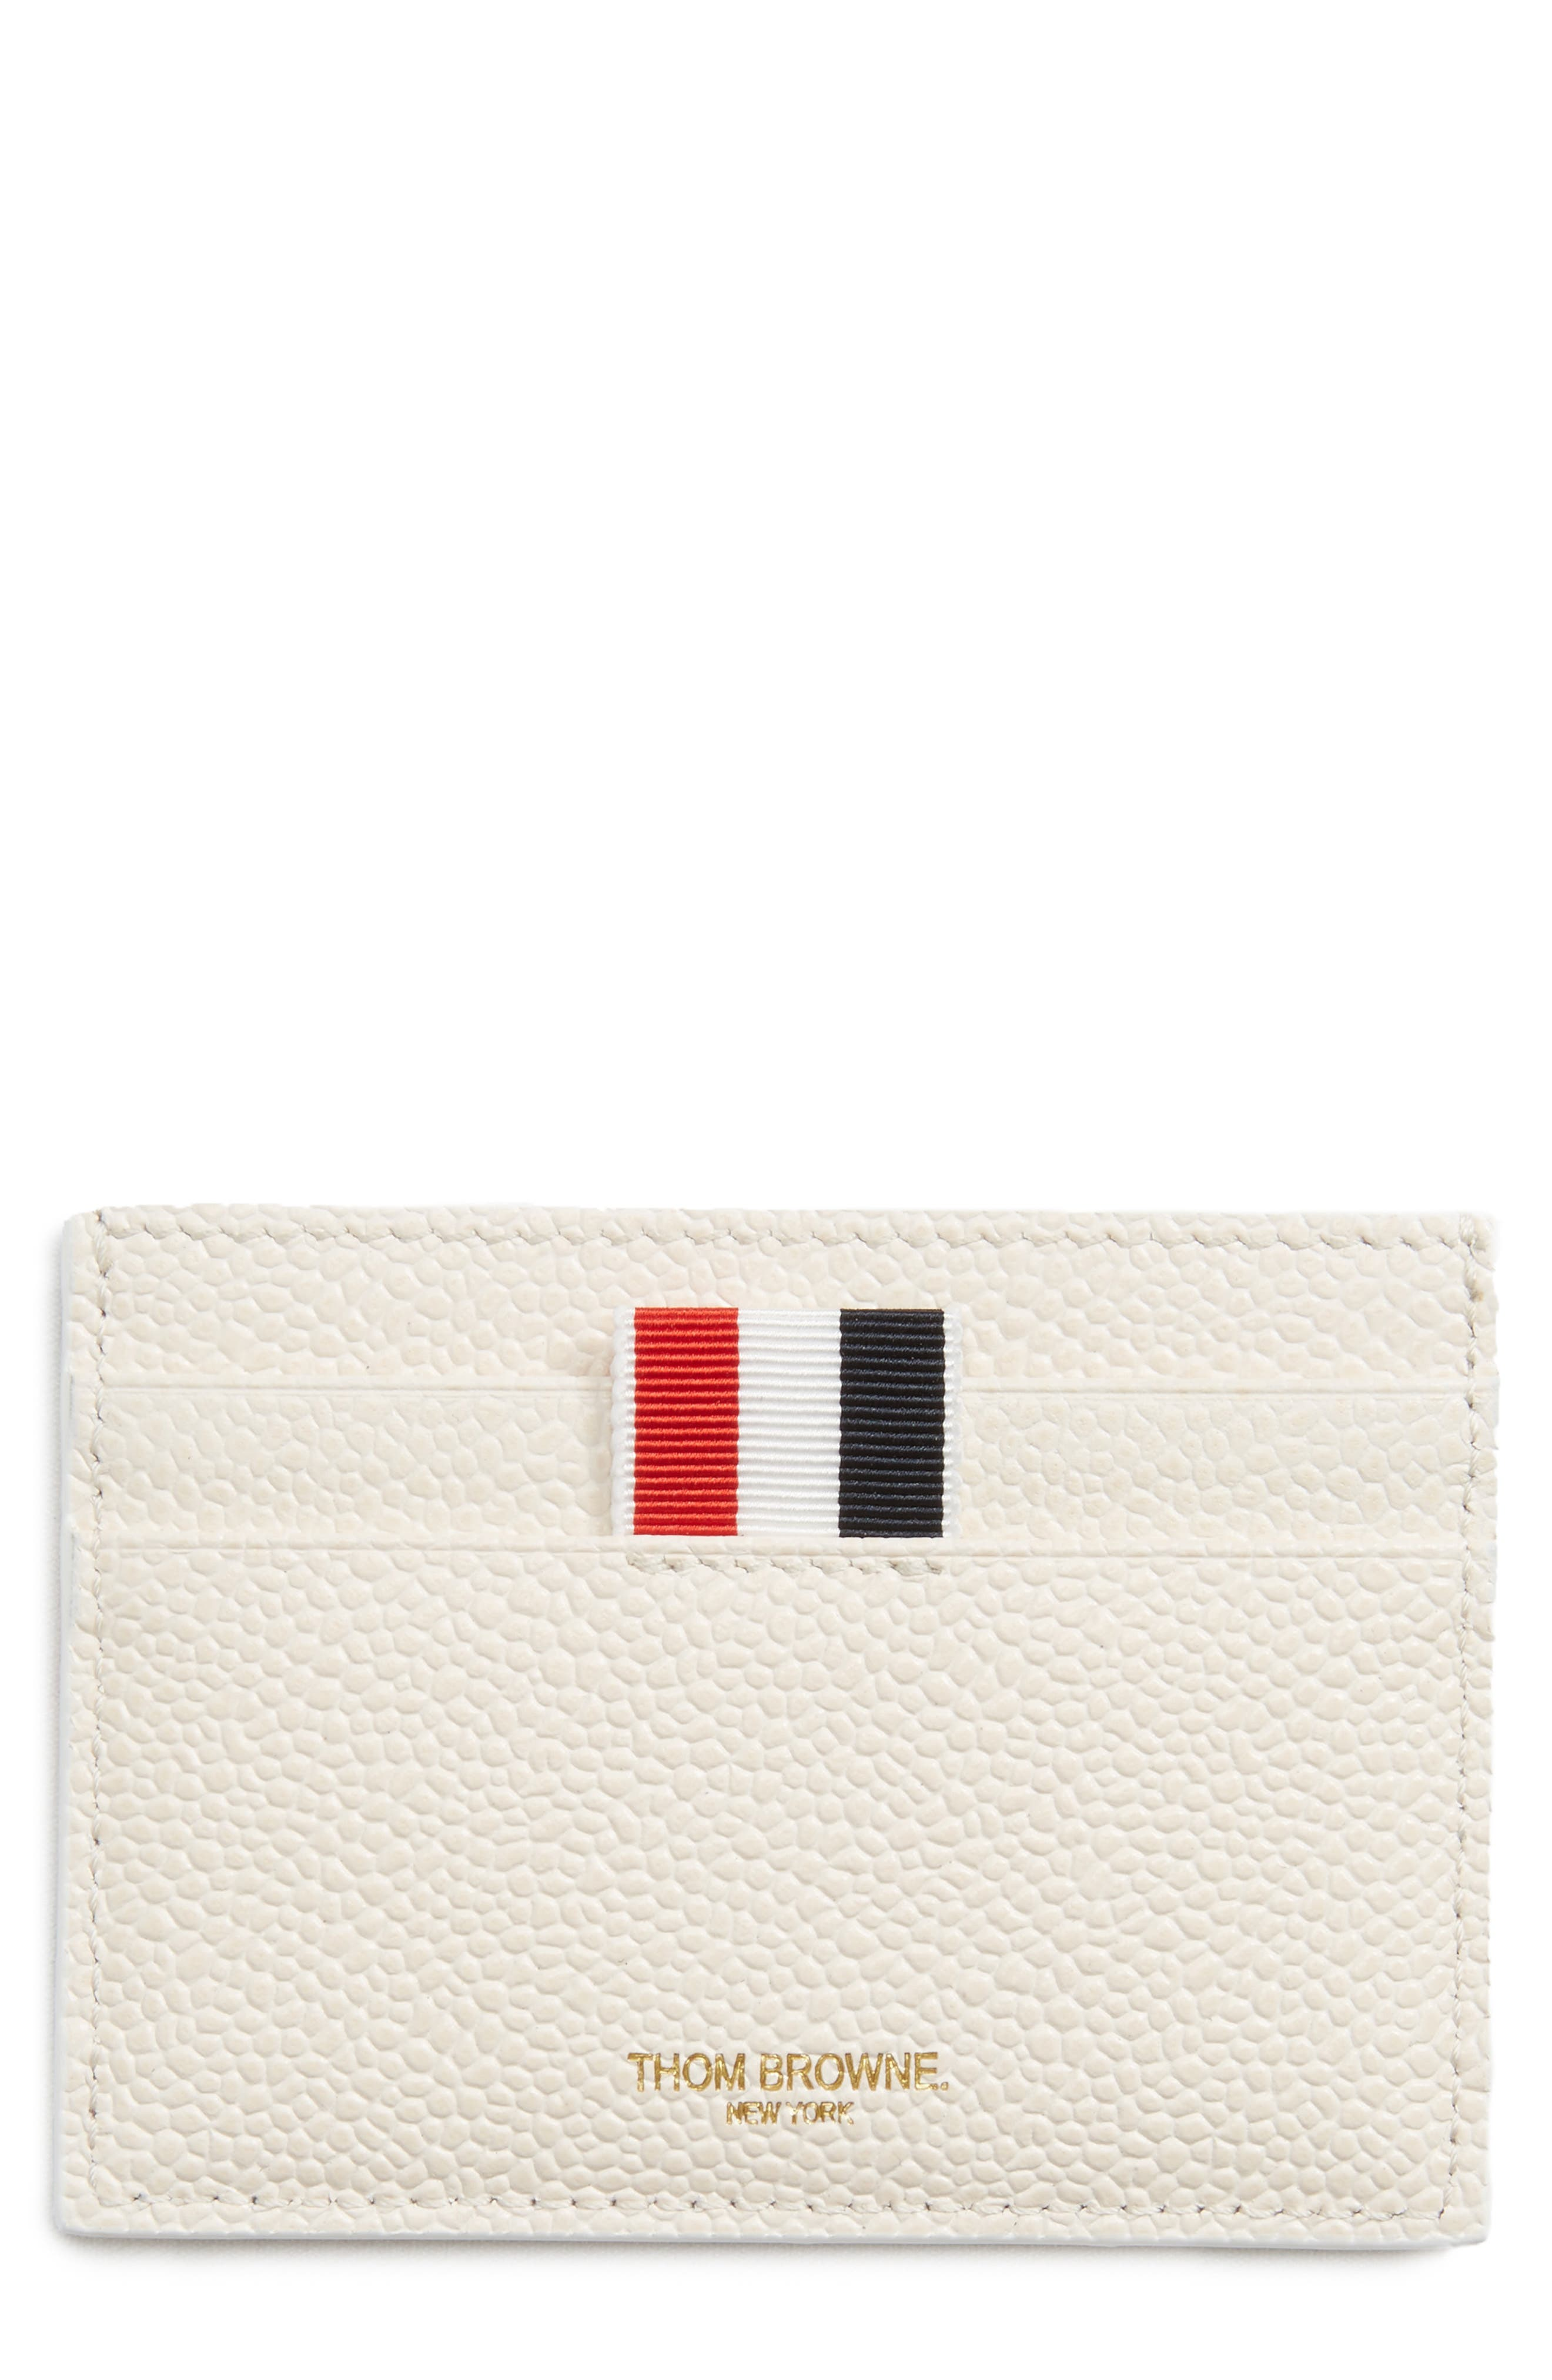 Thom Browne Leather Card Case